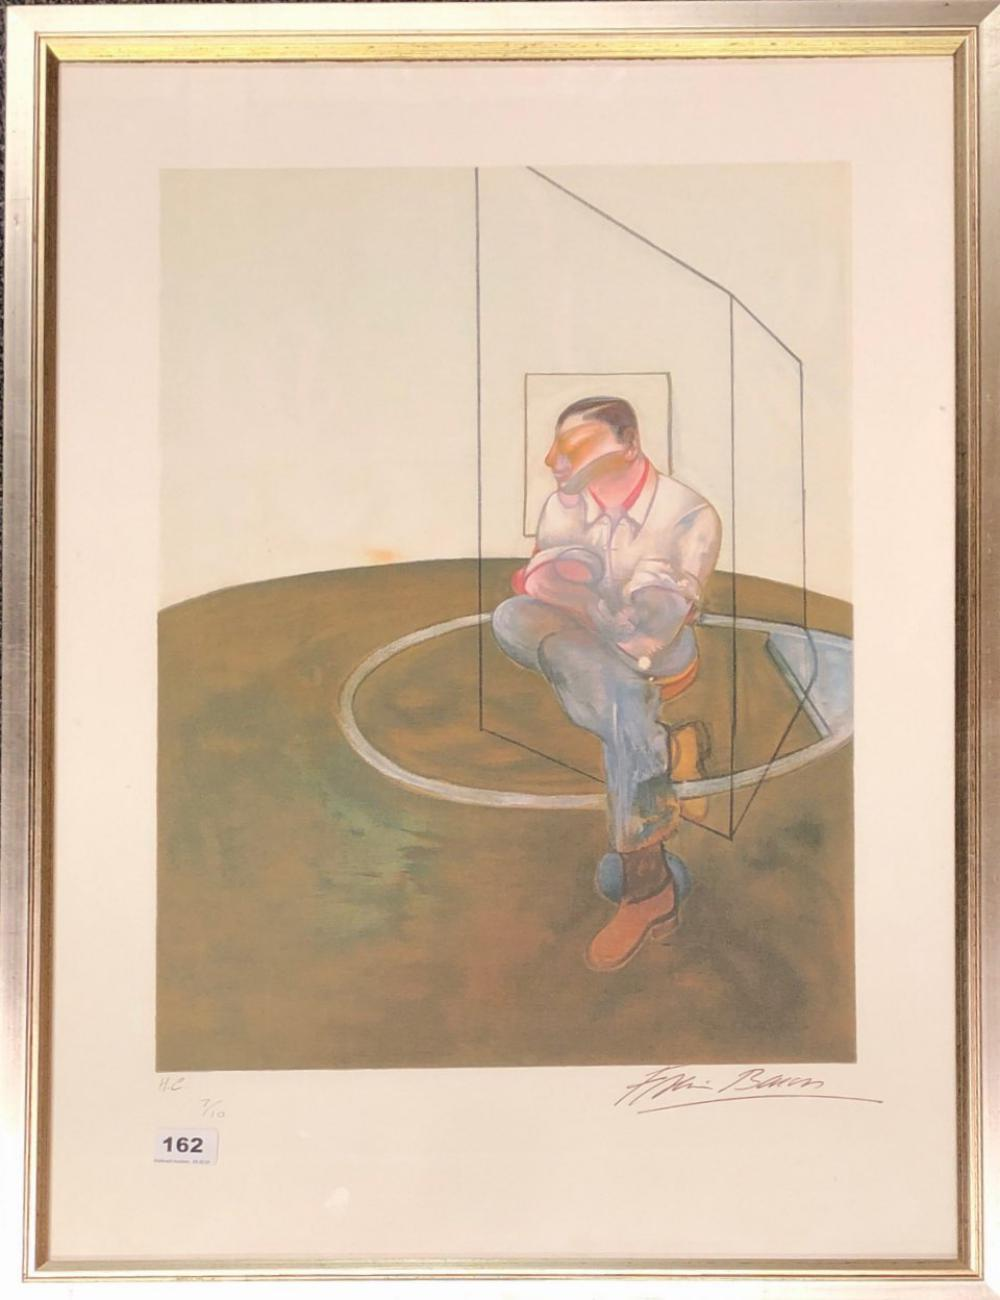 Francis Bacon. A framed lithograph 7/10 framed size 61 x 81cm, Prov. given by the estate beneficiary to the vendor.